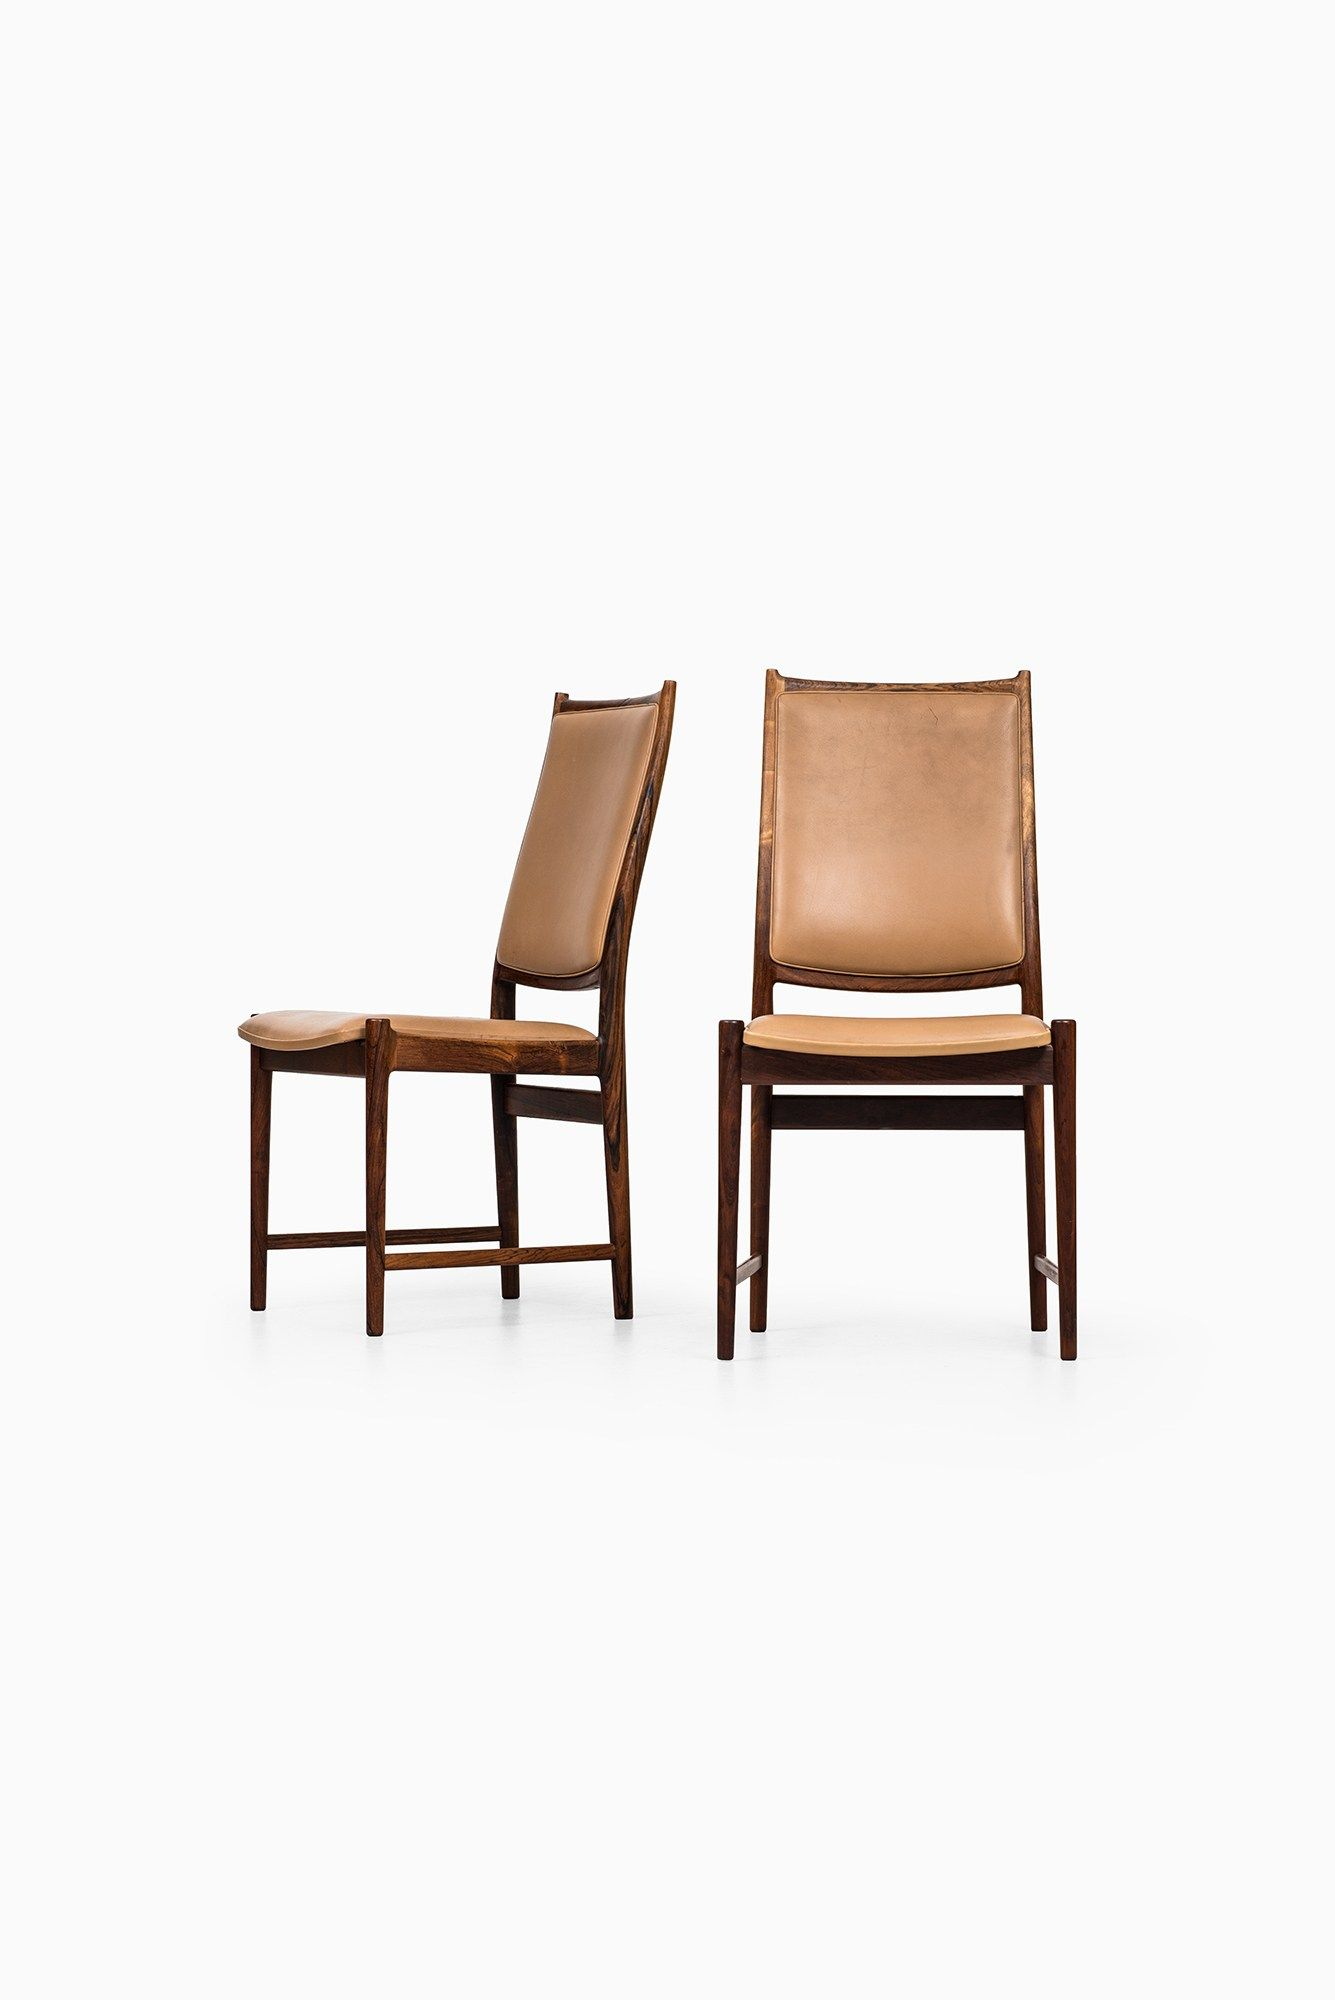 Torbj¸rn Afdal dining chairs